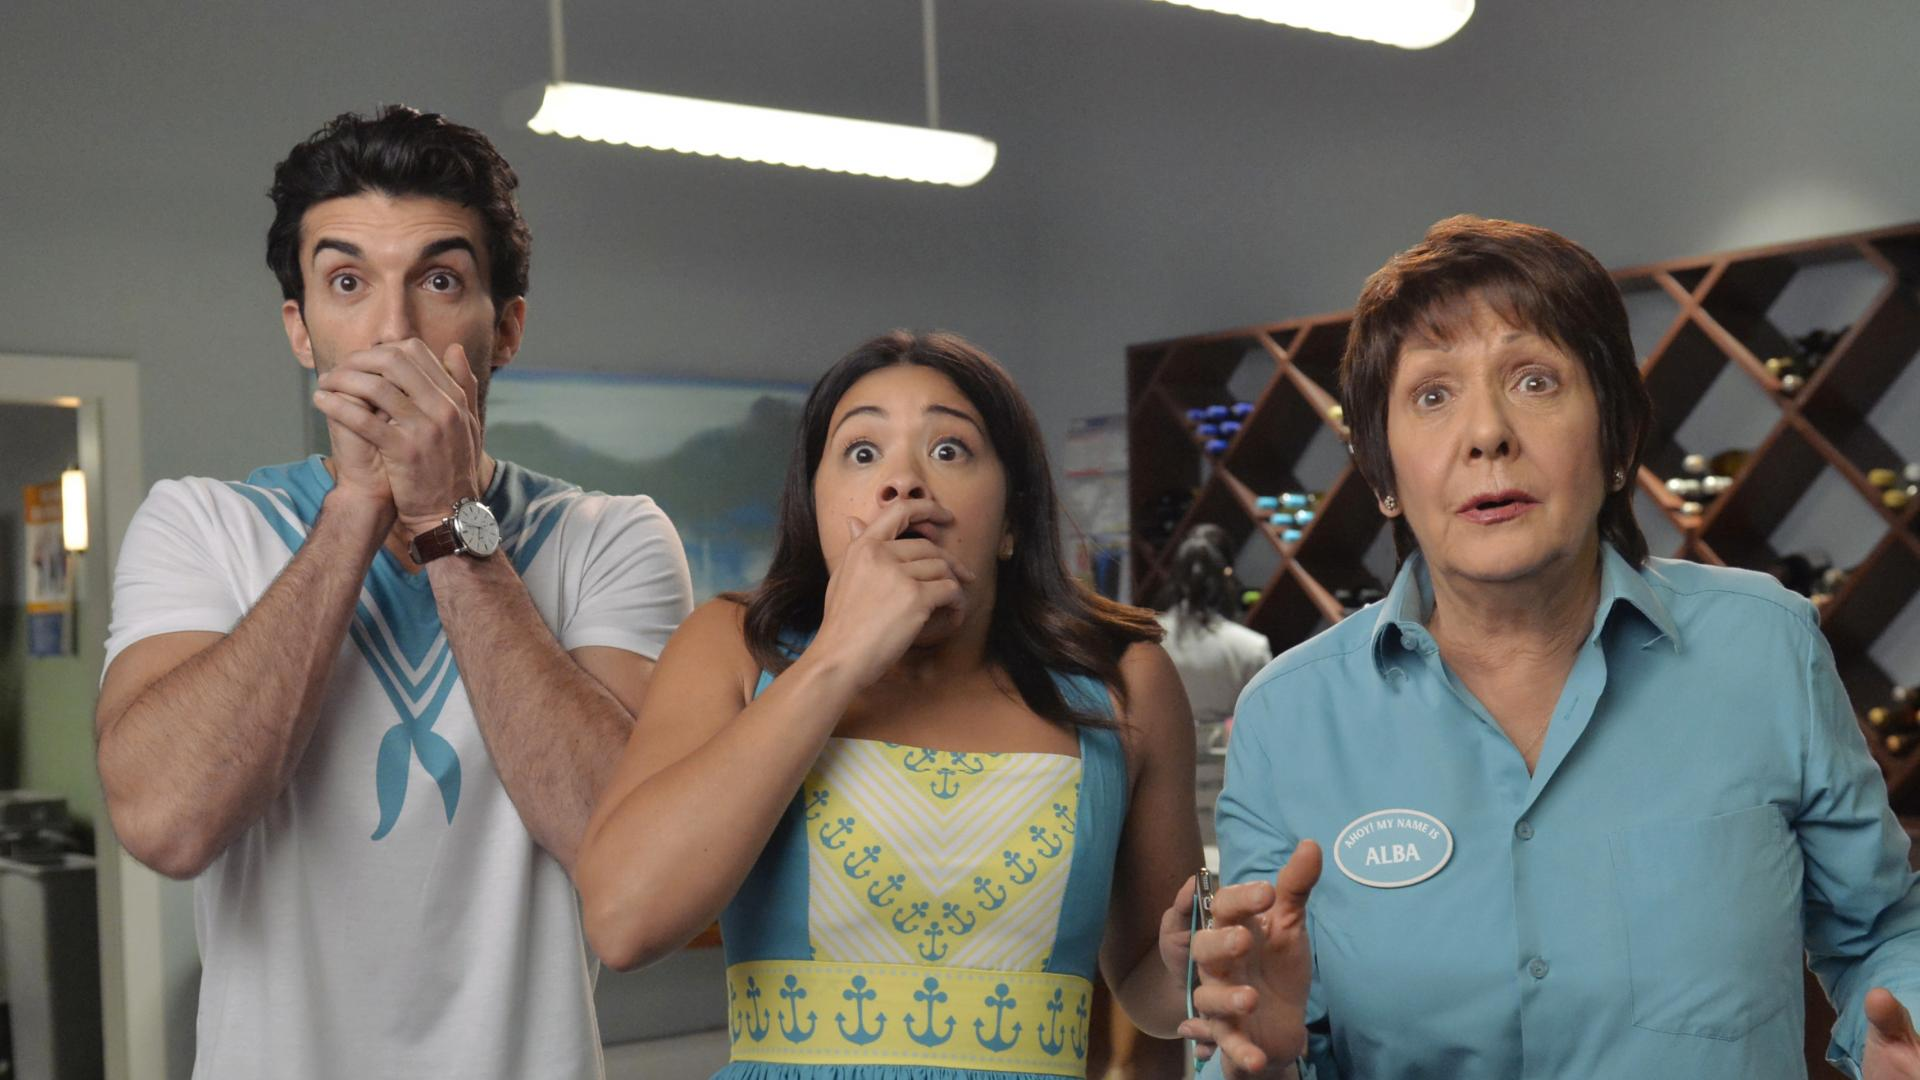 'Jane the Virgin' Will Return For Its Final Season in March, So Get Ready to Laugh & Cry